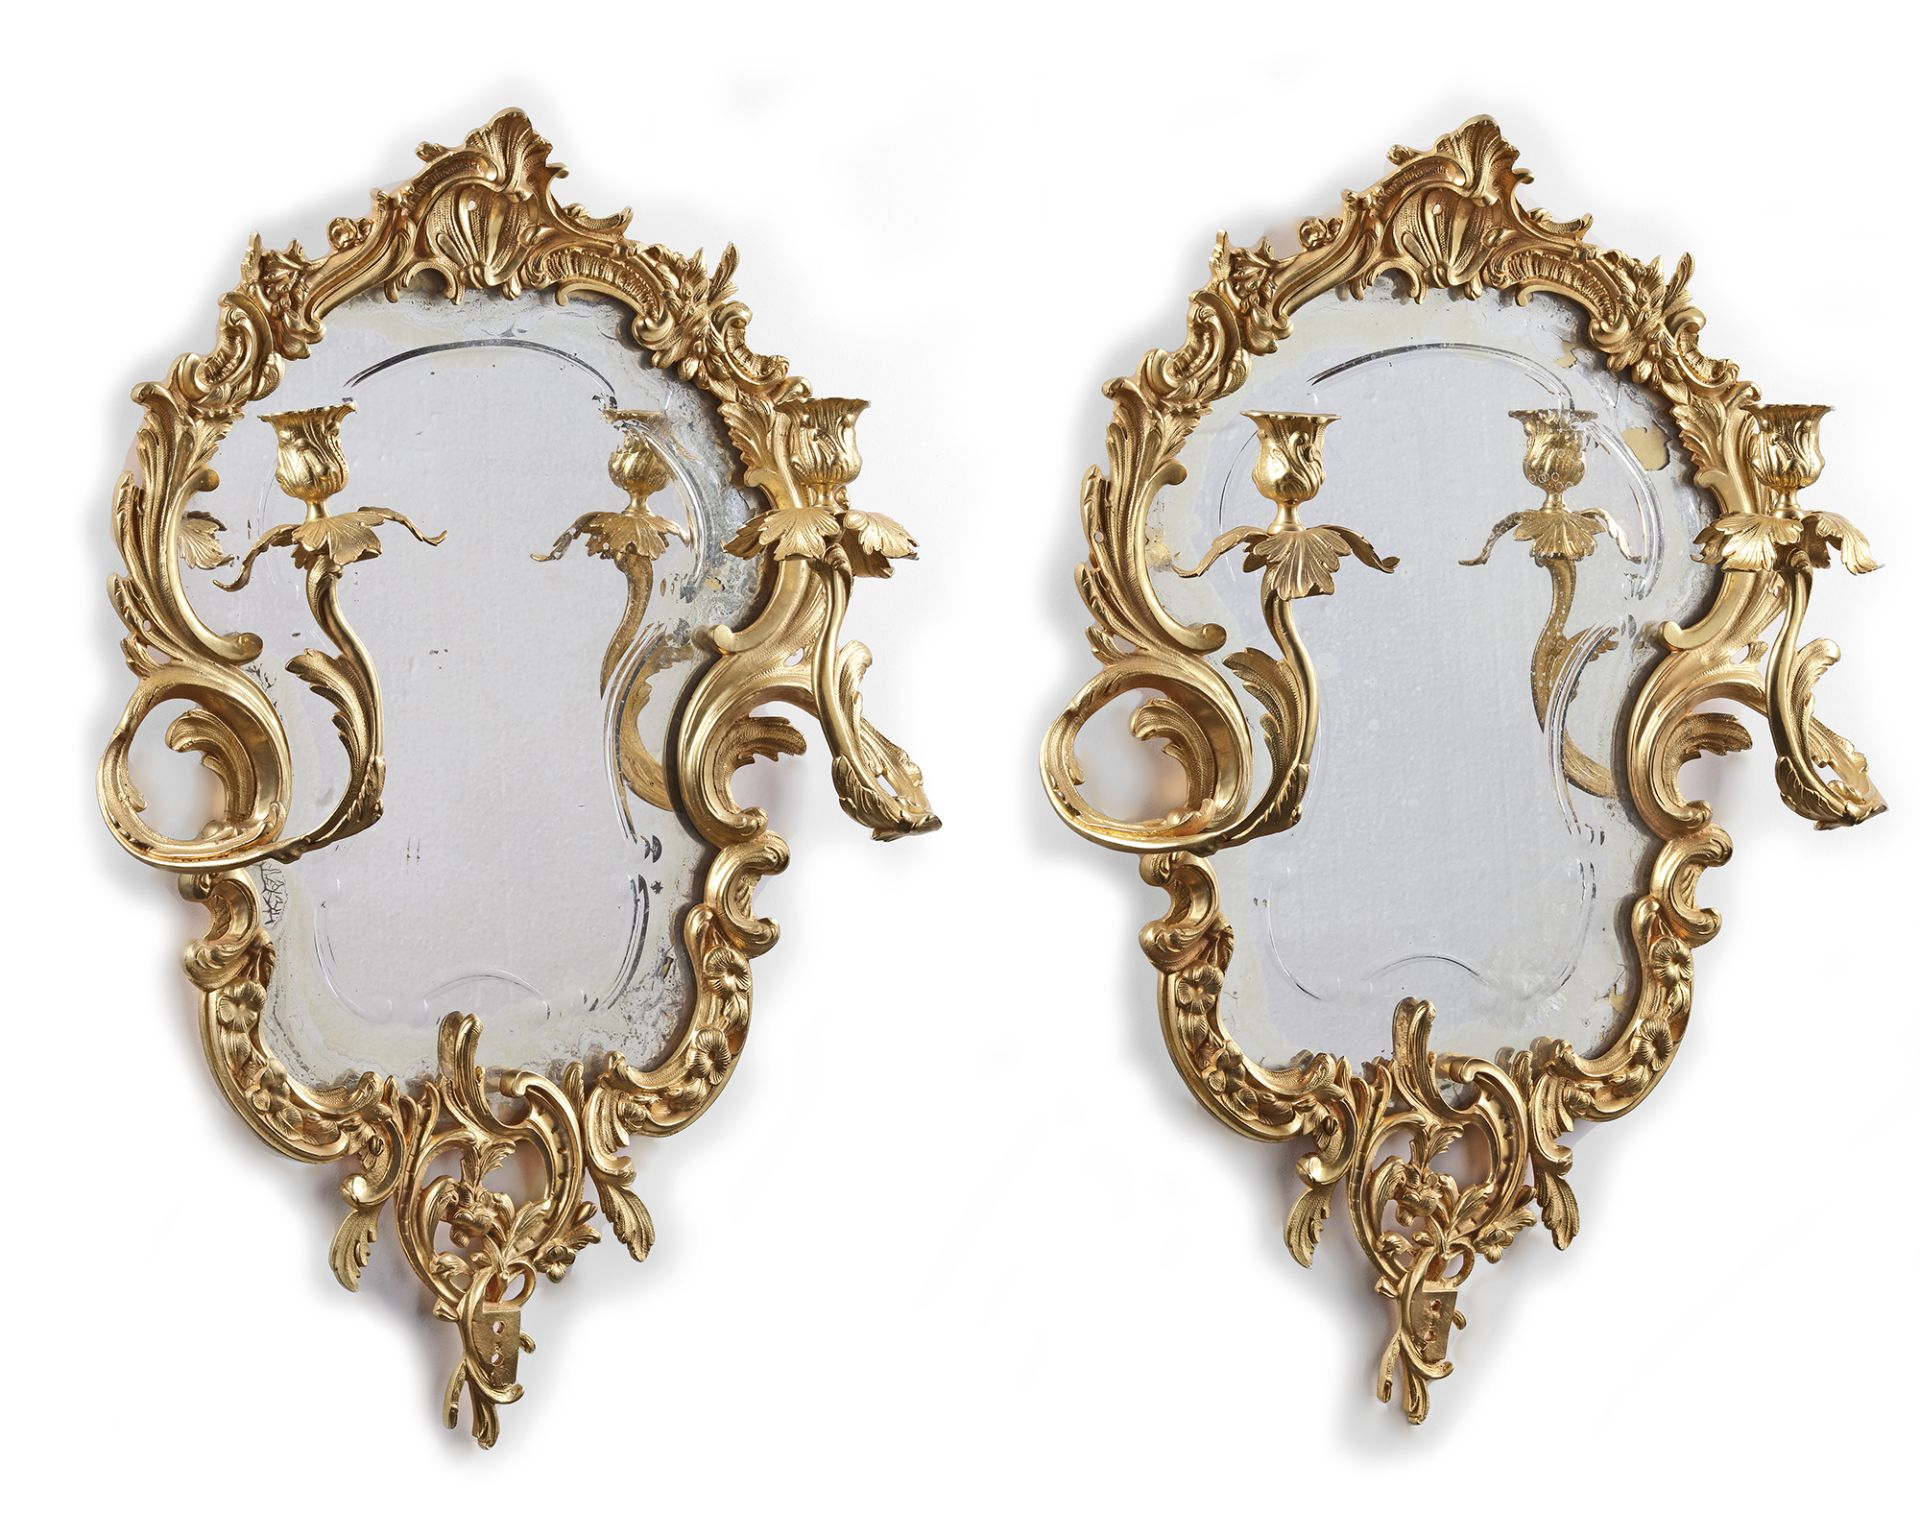 A PAIR OF FRENCH MIRROR-SCONCES, 19TH CENTURY